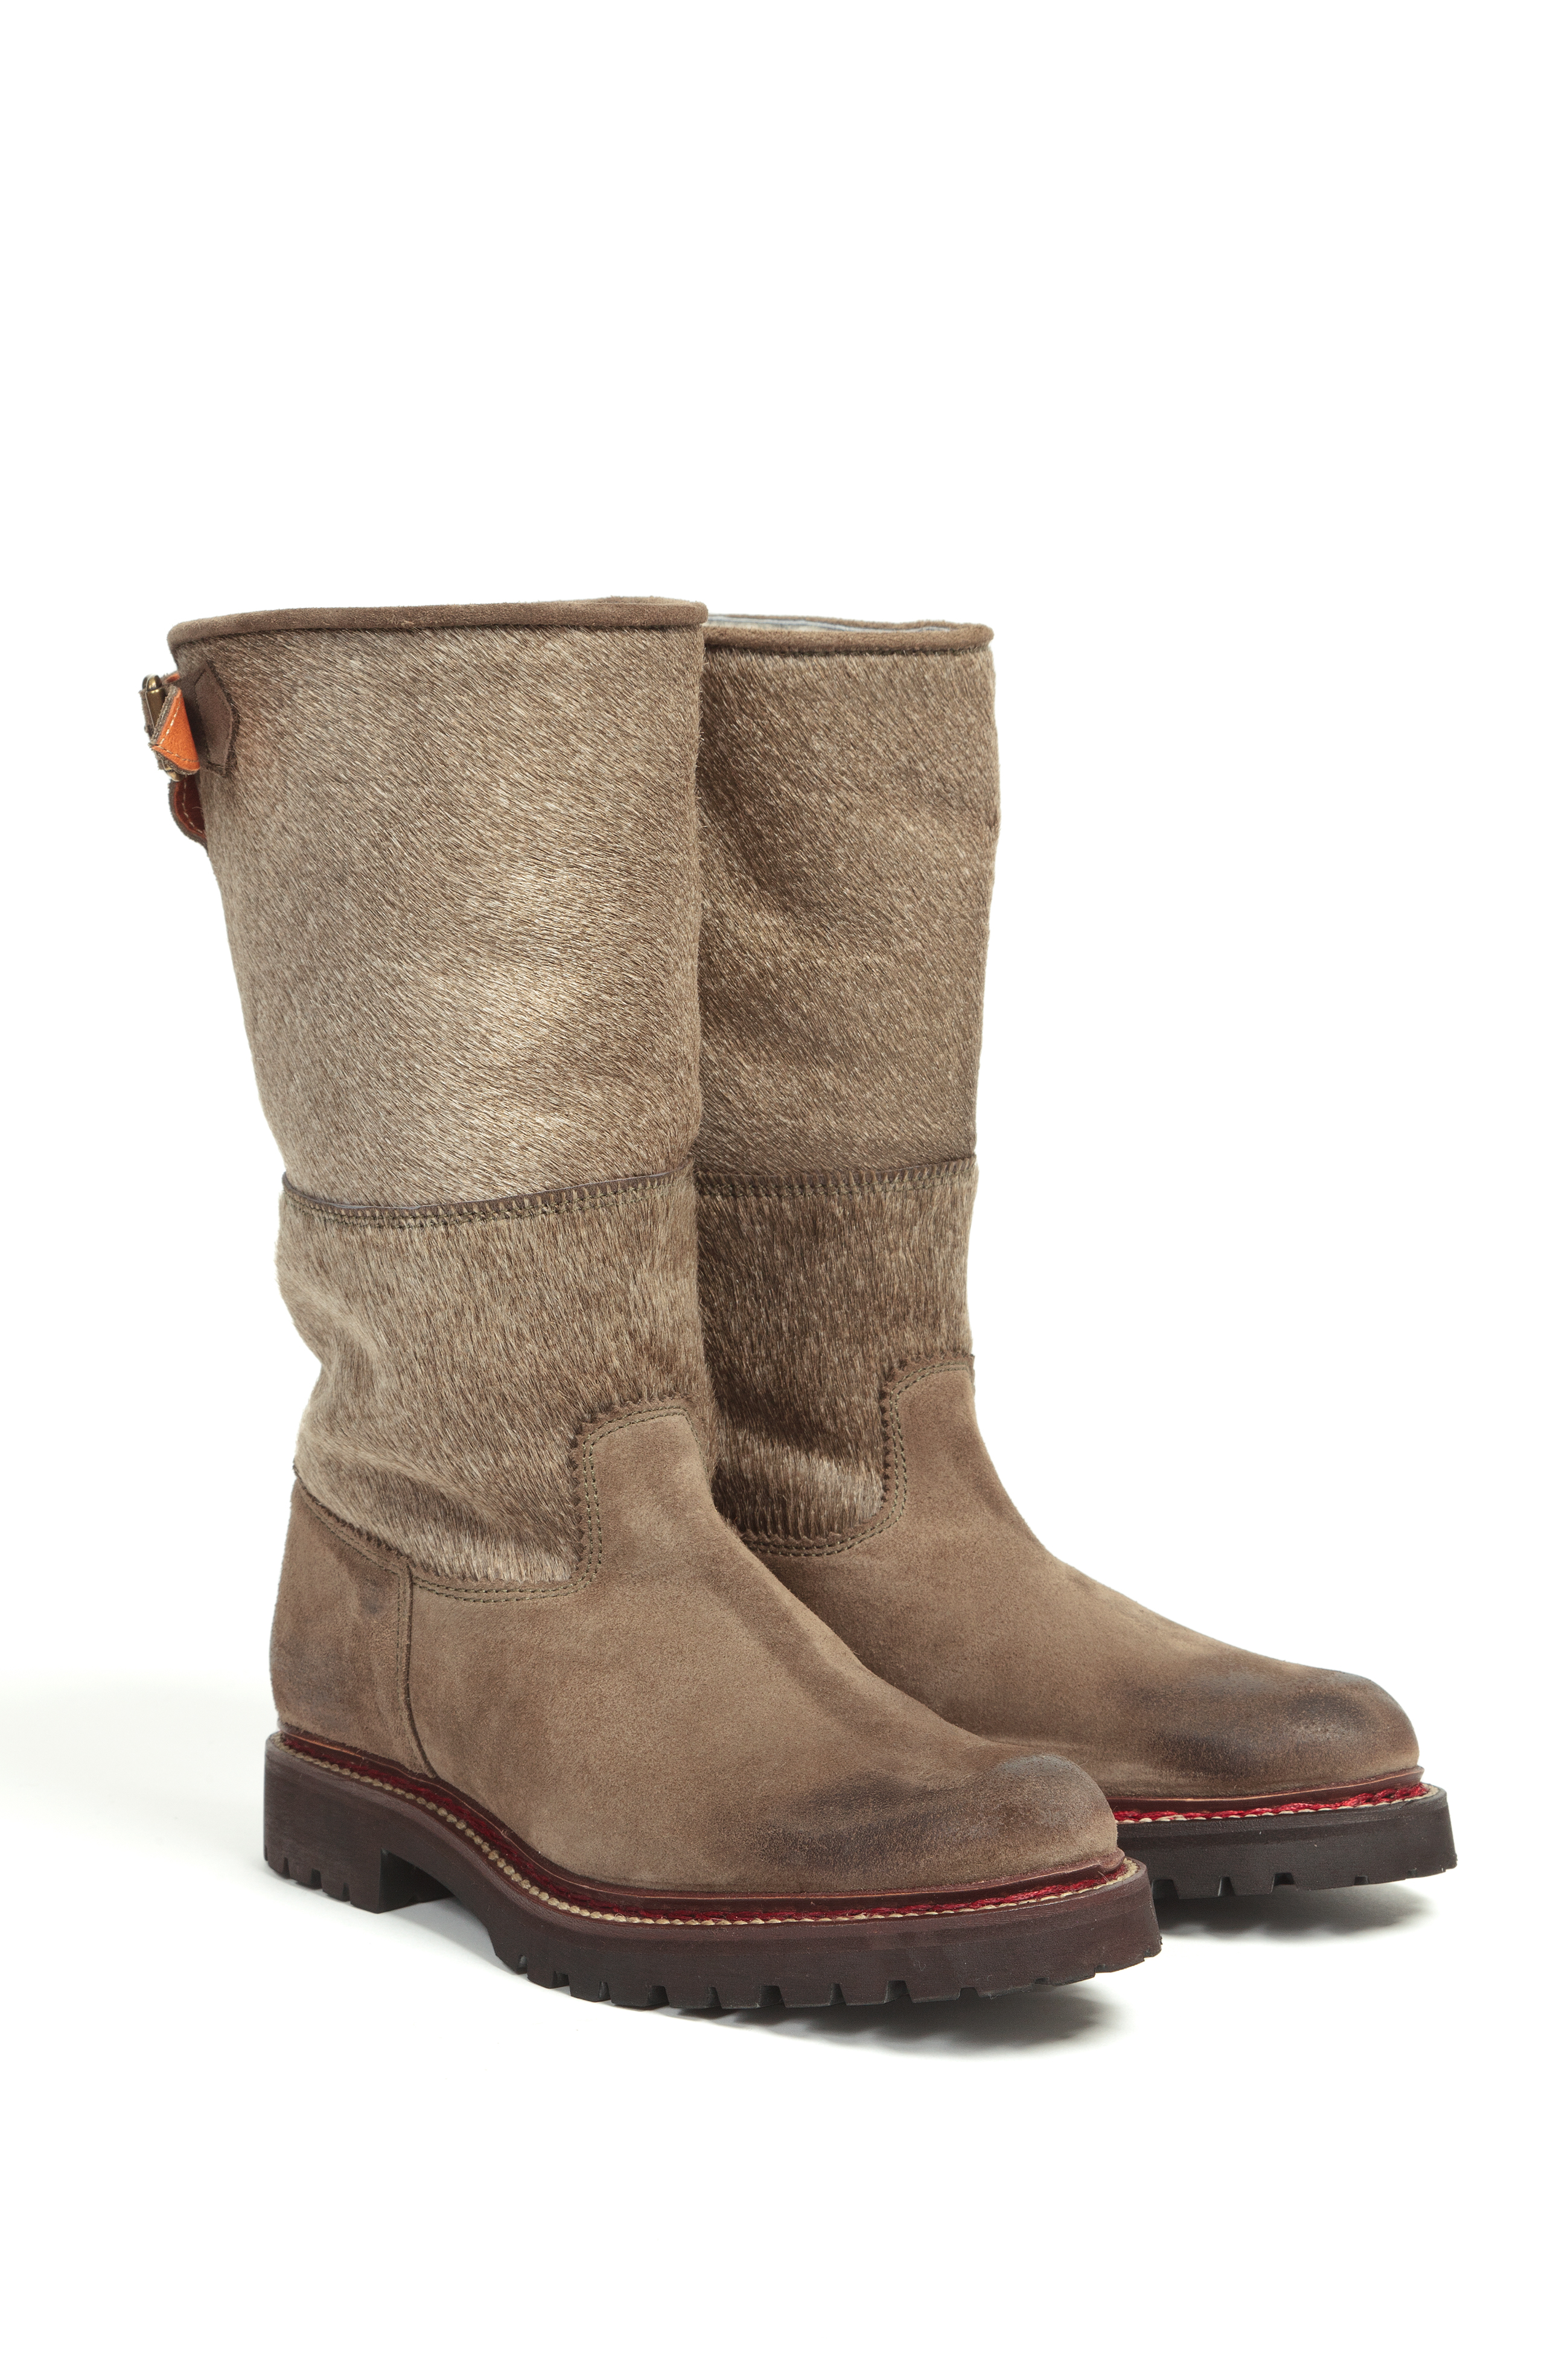 a7711faecd8 Boots Ugg Reputation Watches Mgc Ugly Uggs Cheap dCxoBe